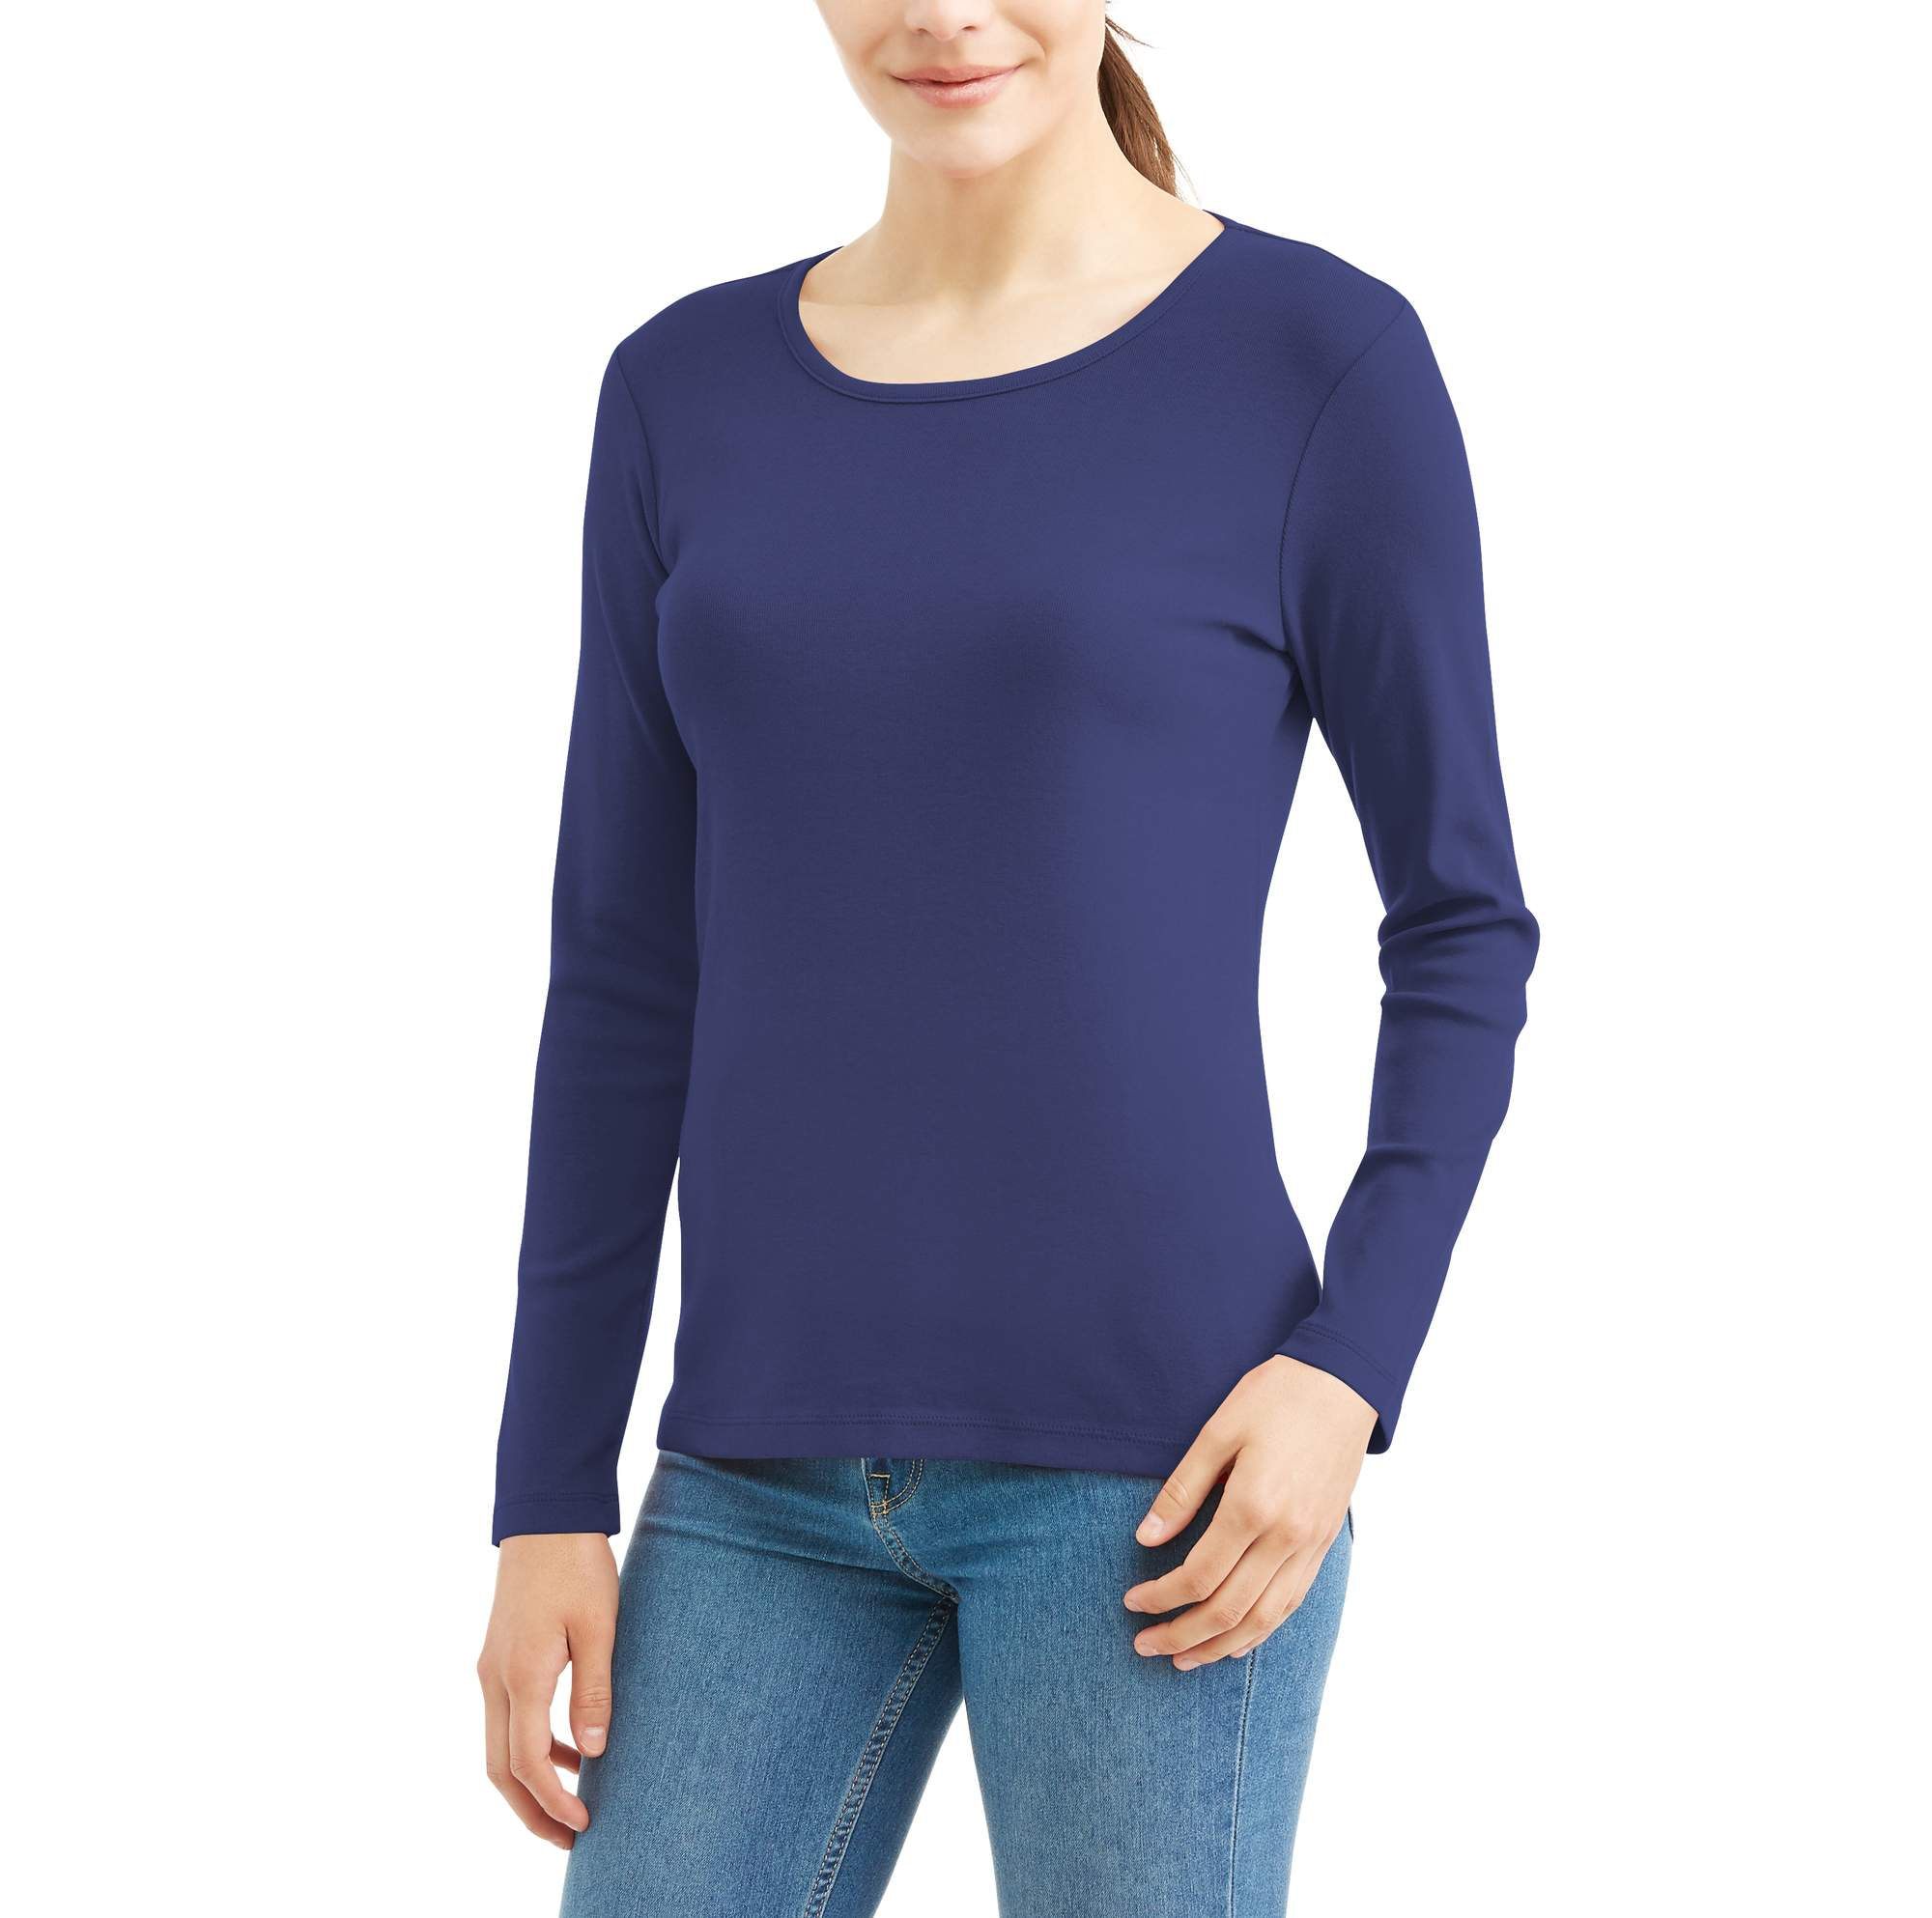 White Stag Women's Essential Long-Sleeve Crewneck T-shirt